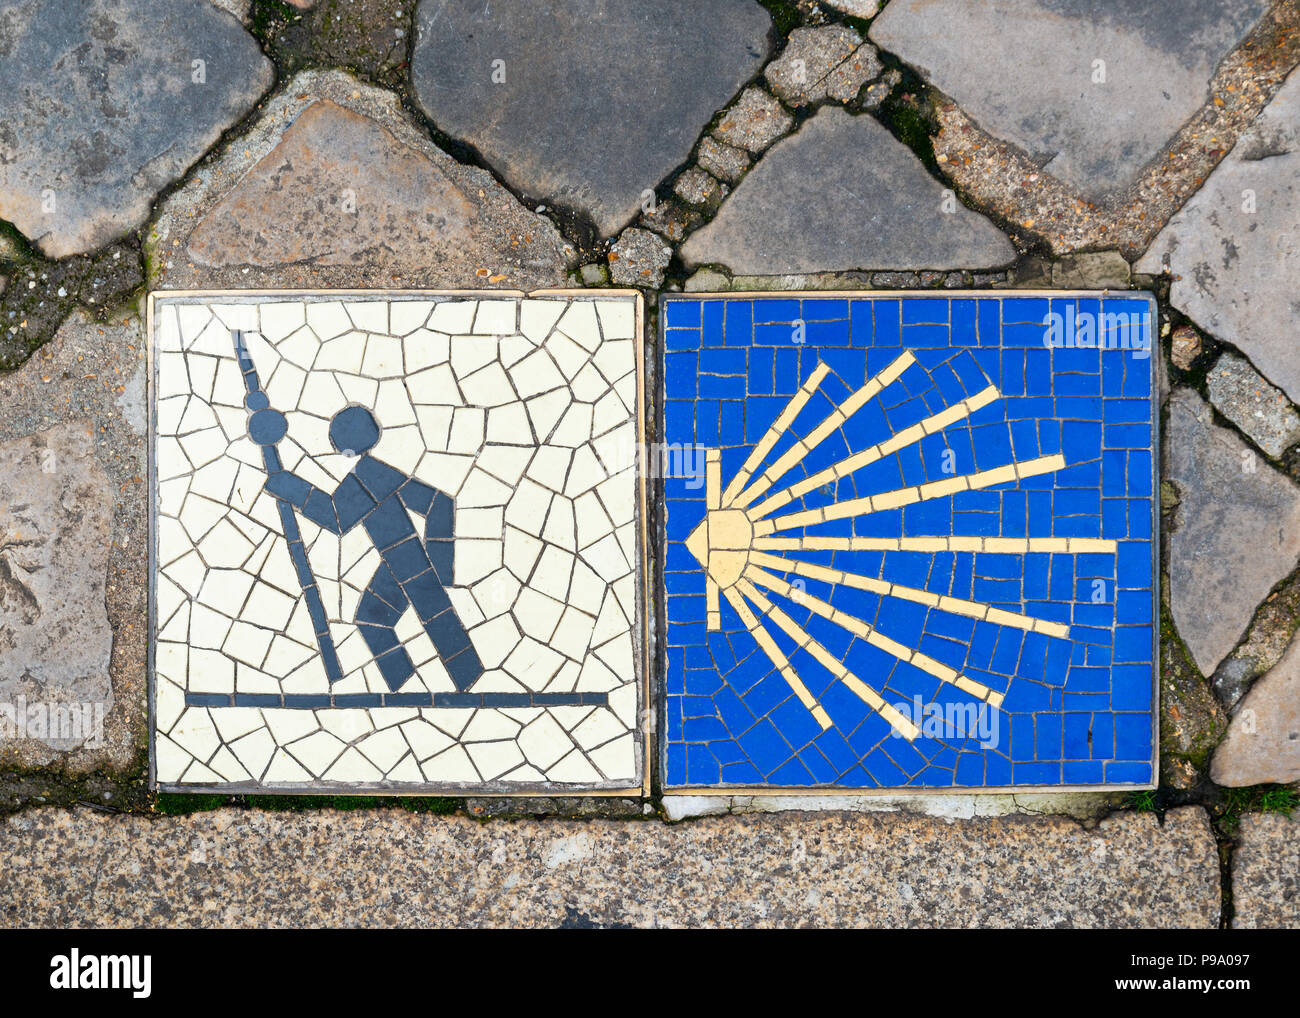 Camino de Santiago pilgrimage sign in Chartres, France. - Stock Image